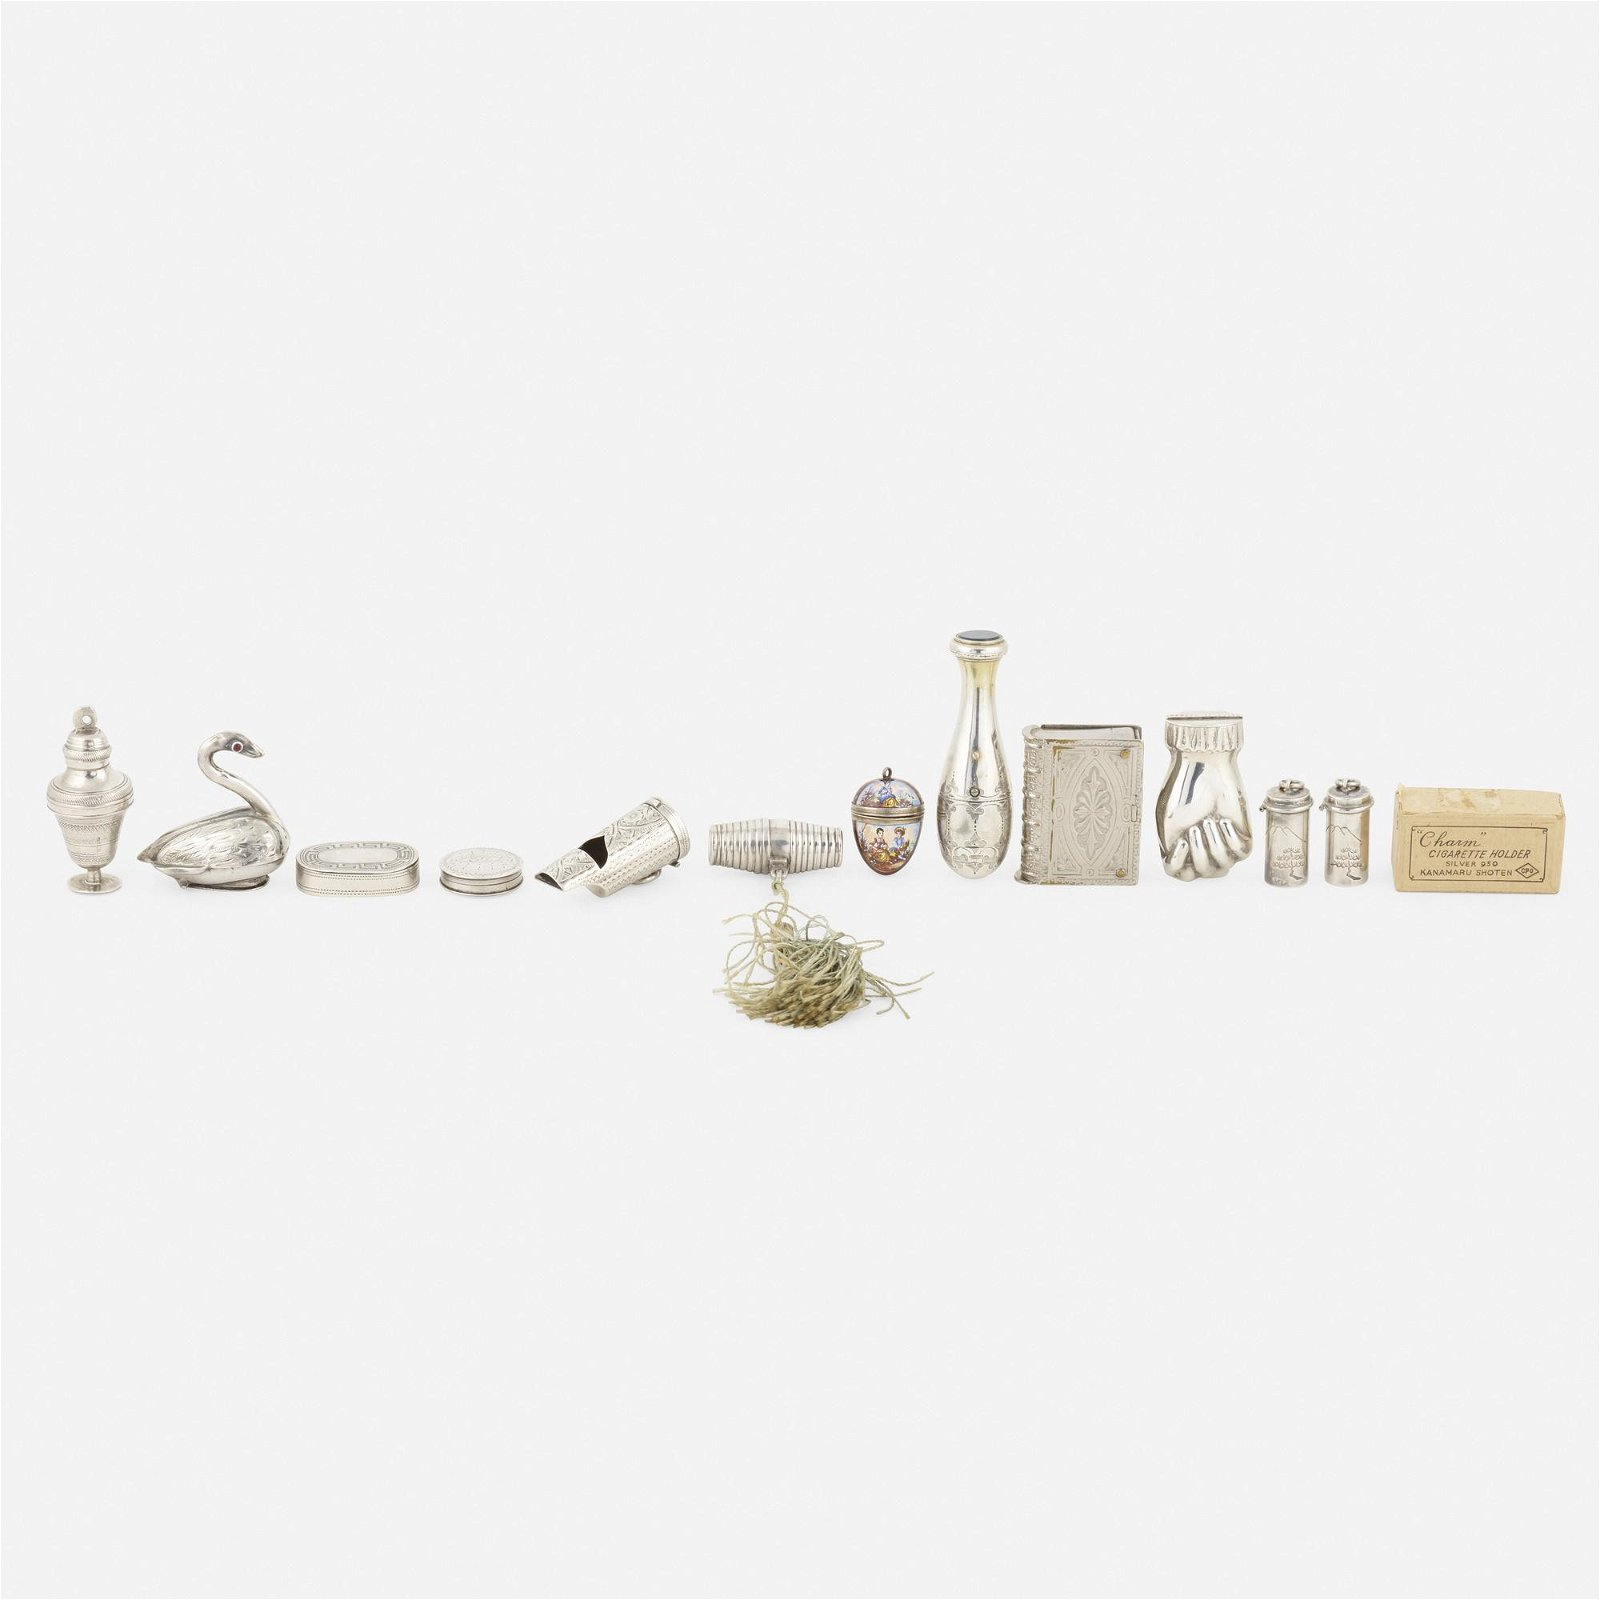 miniature silver objects, collection of twelve